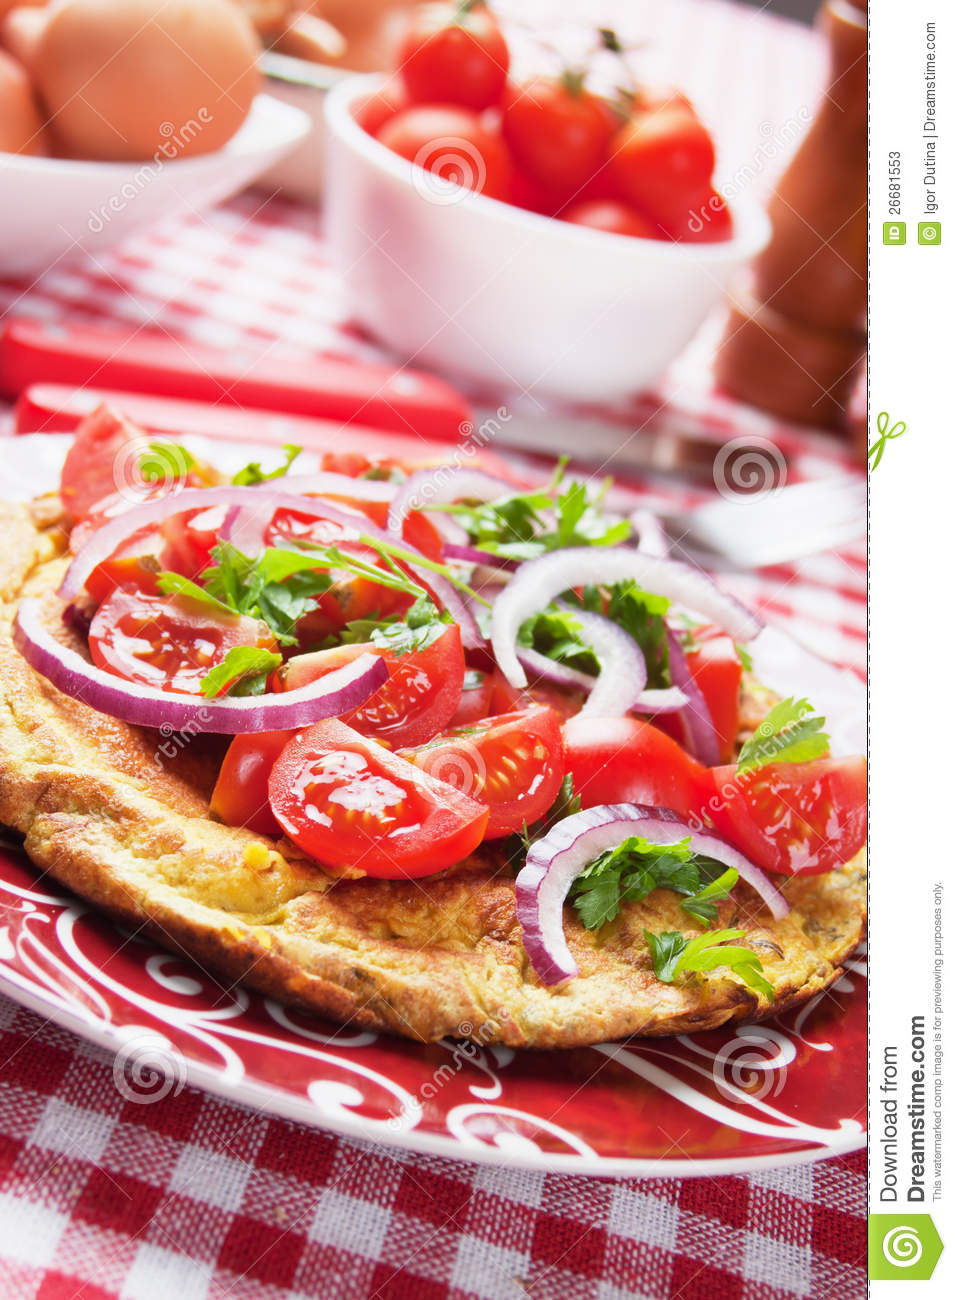 Omelet With Tomato Salad Stock Photos - Image: 26681553